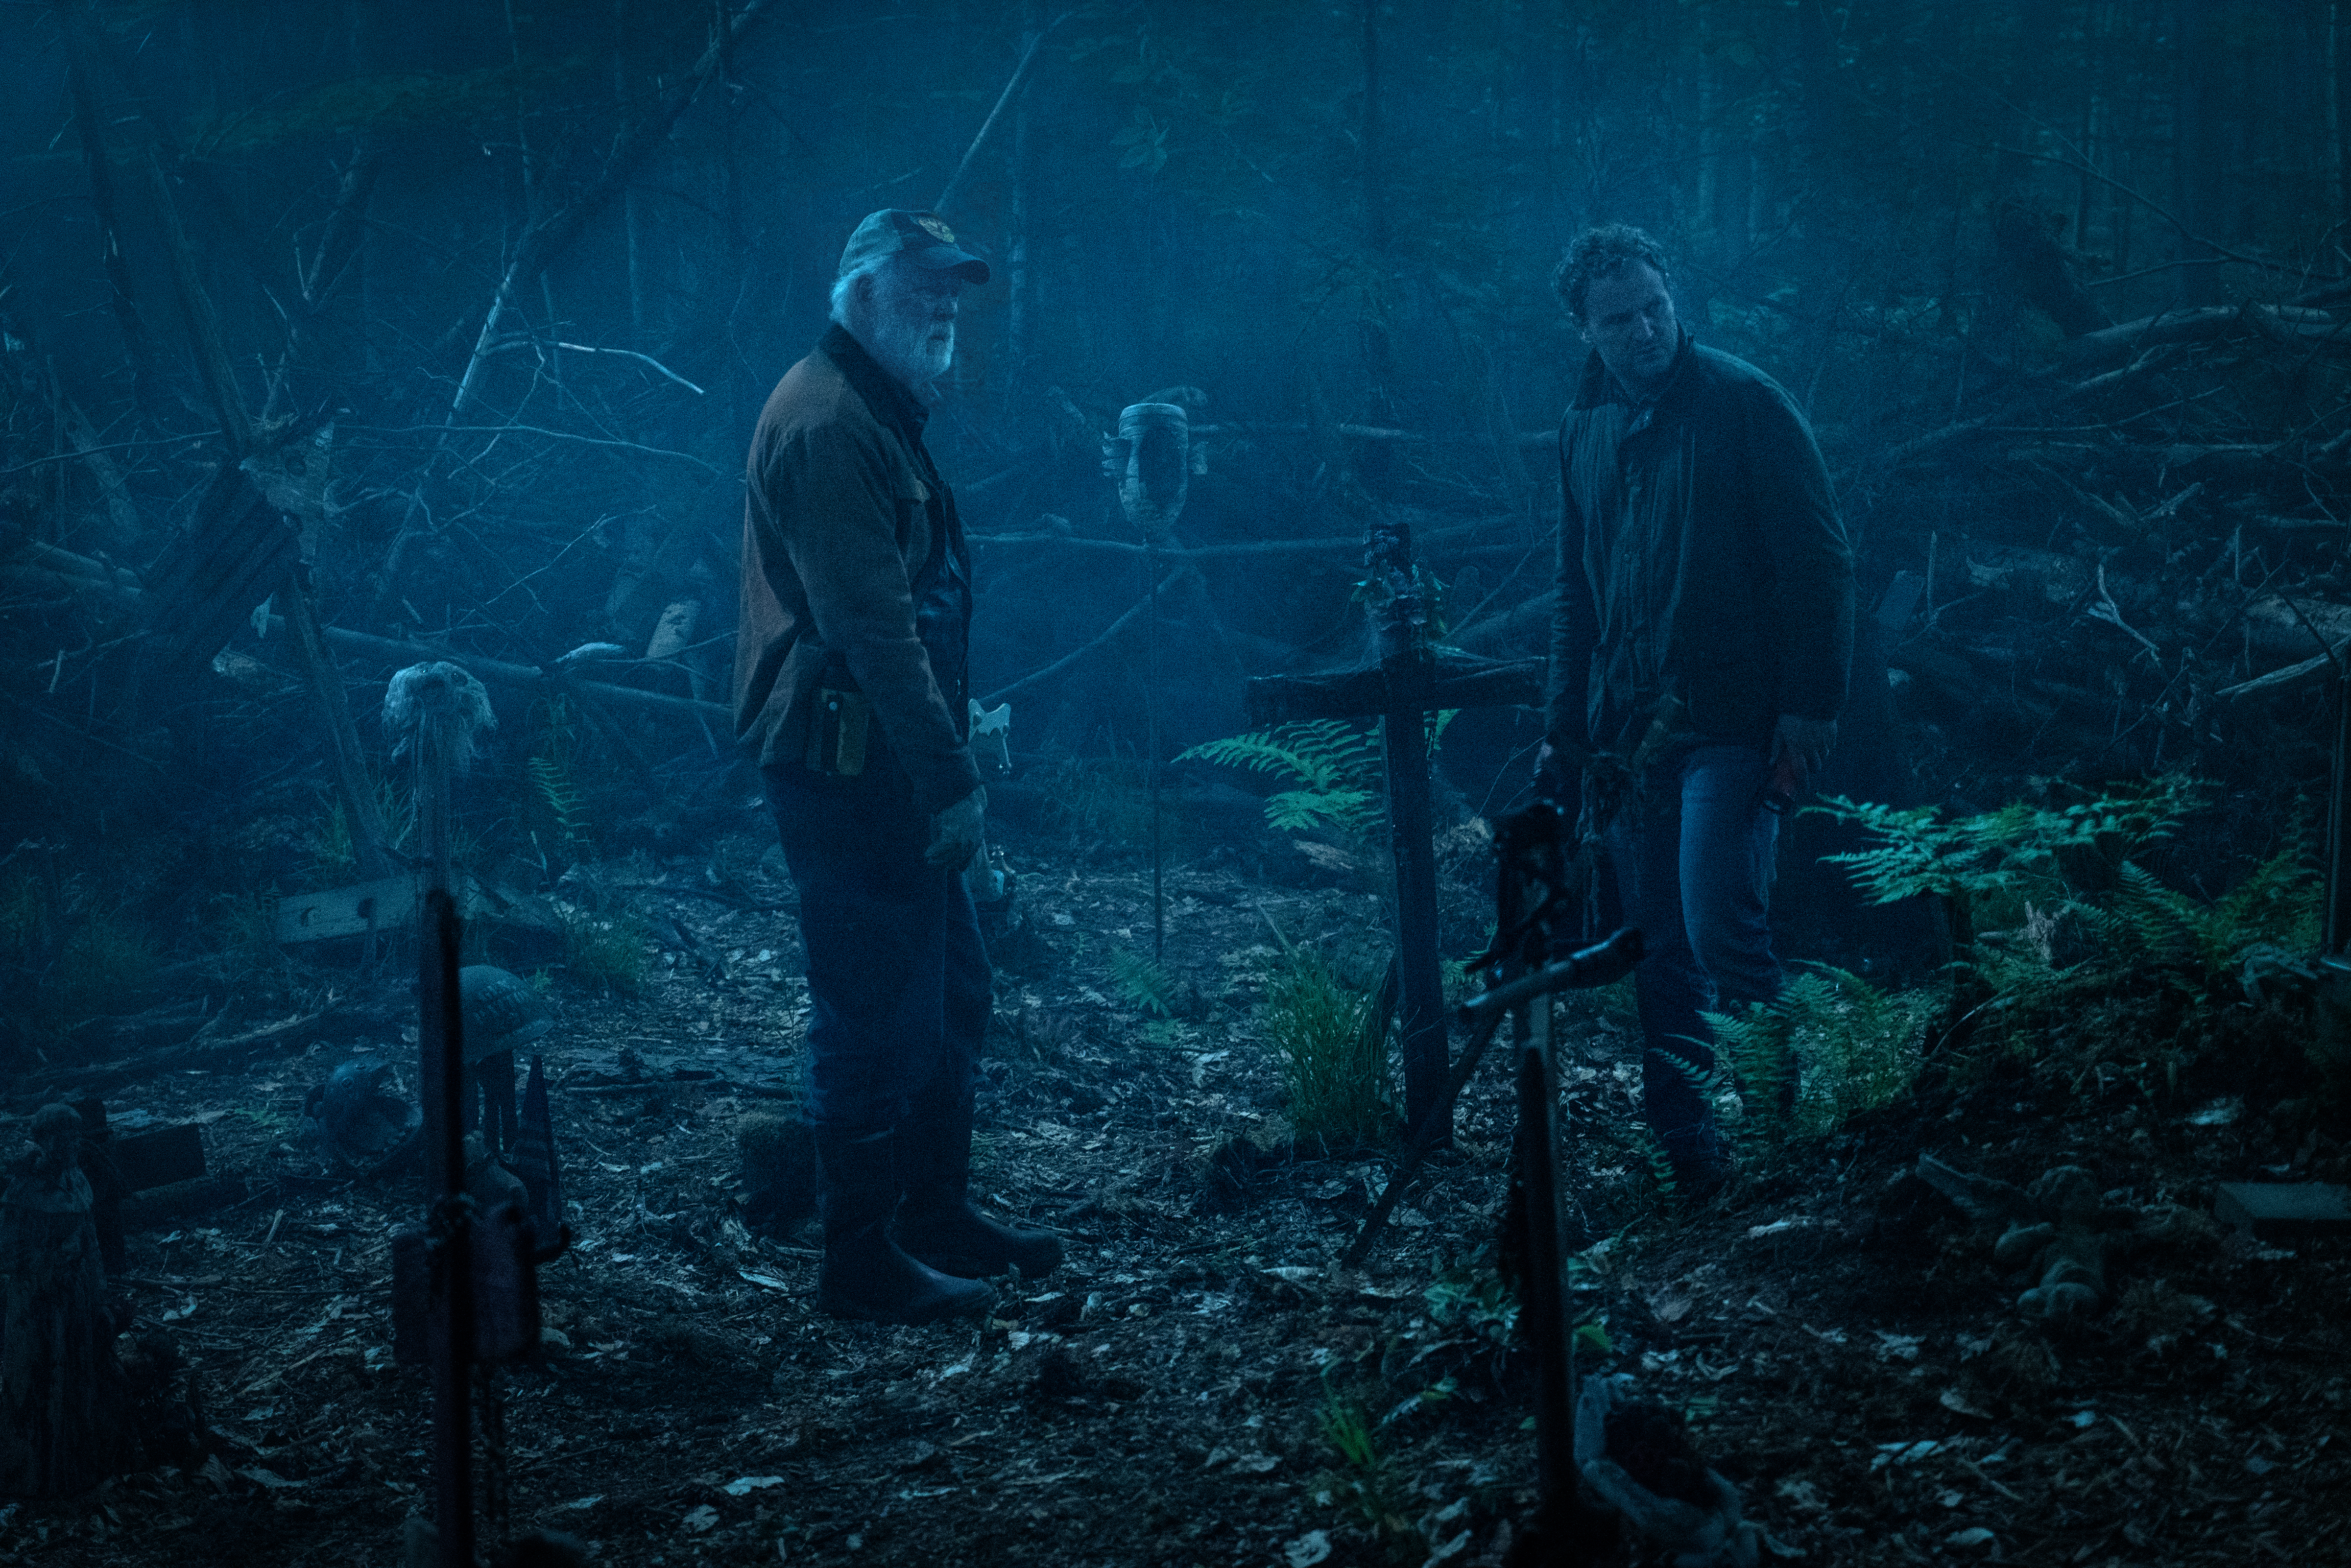 Pet Sematary World Premiere to Close SXSW